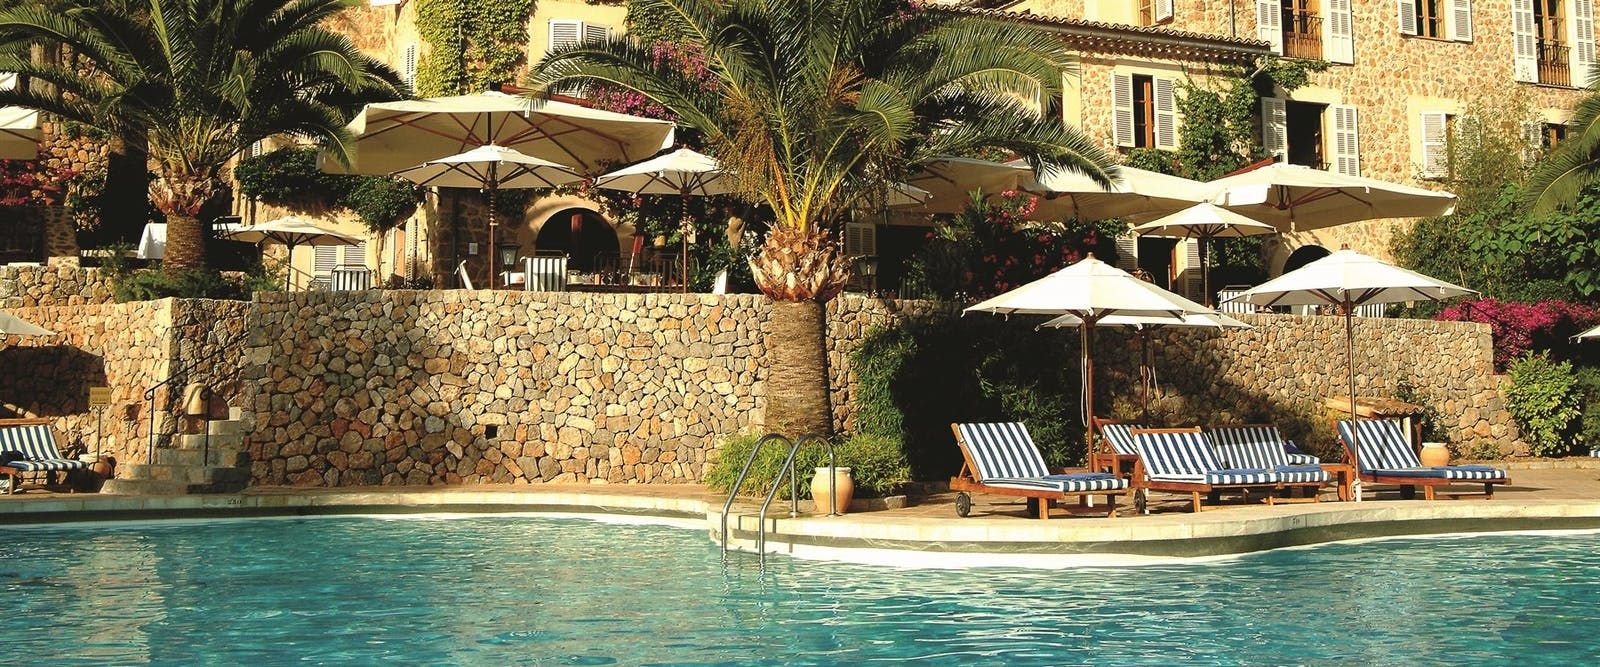 Swimming Pool at La Residencia, A Belmond Hotel, Mallorca